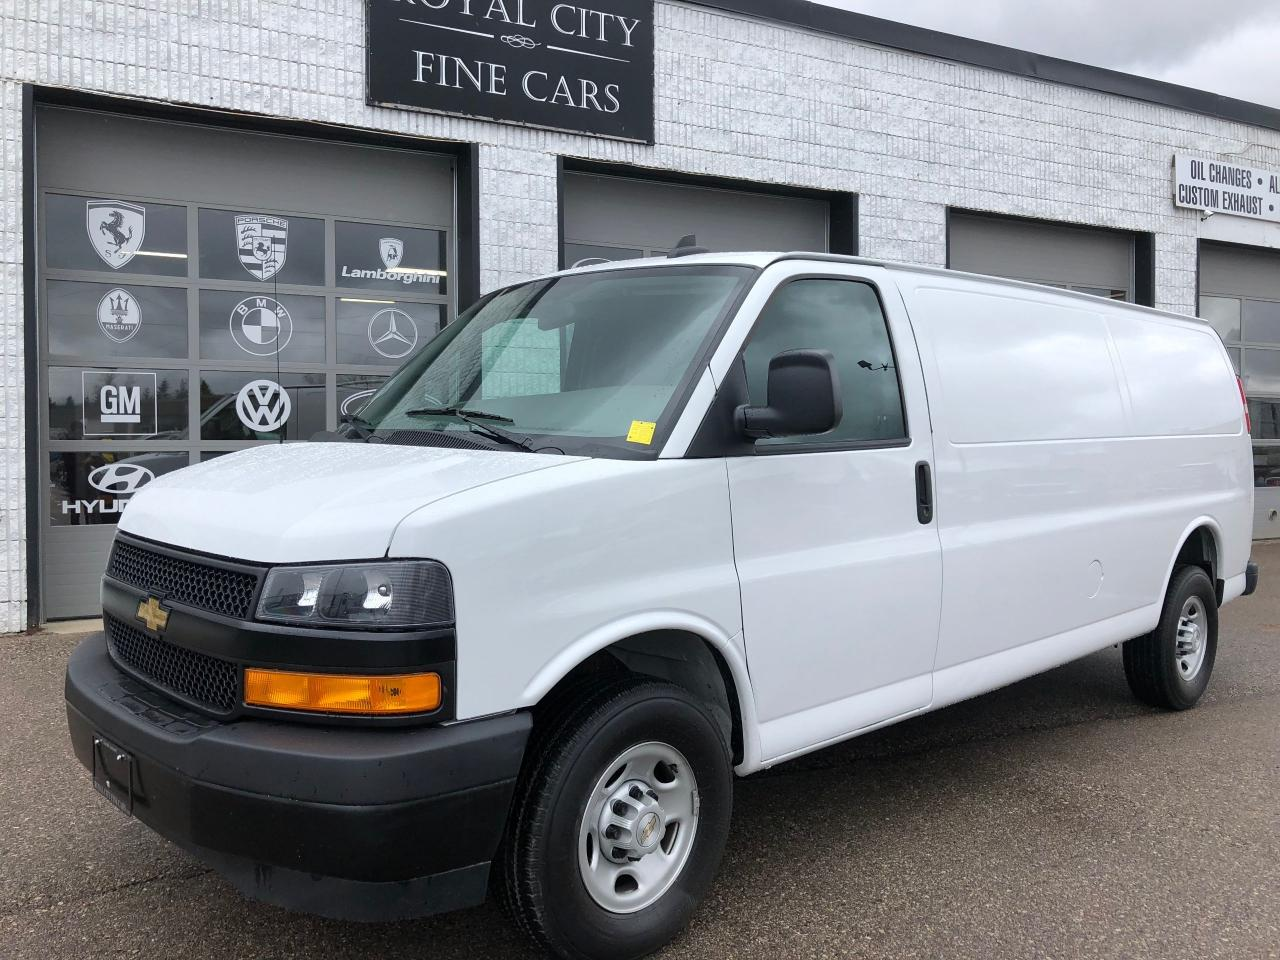 2018 Chevrolet Express in Guelph | Royal City Fine Cars